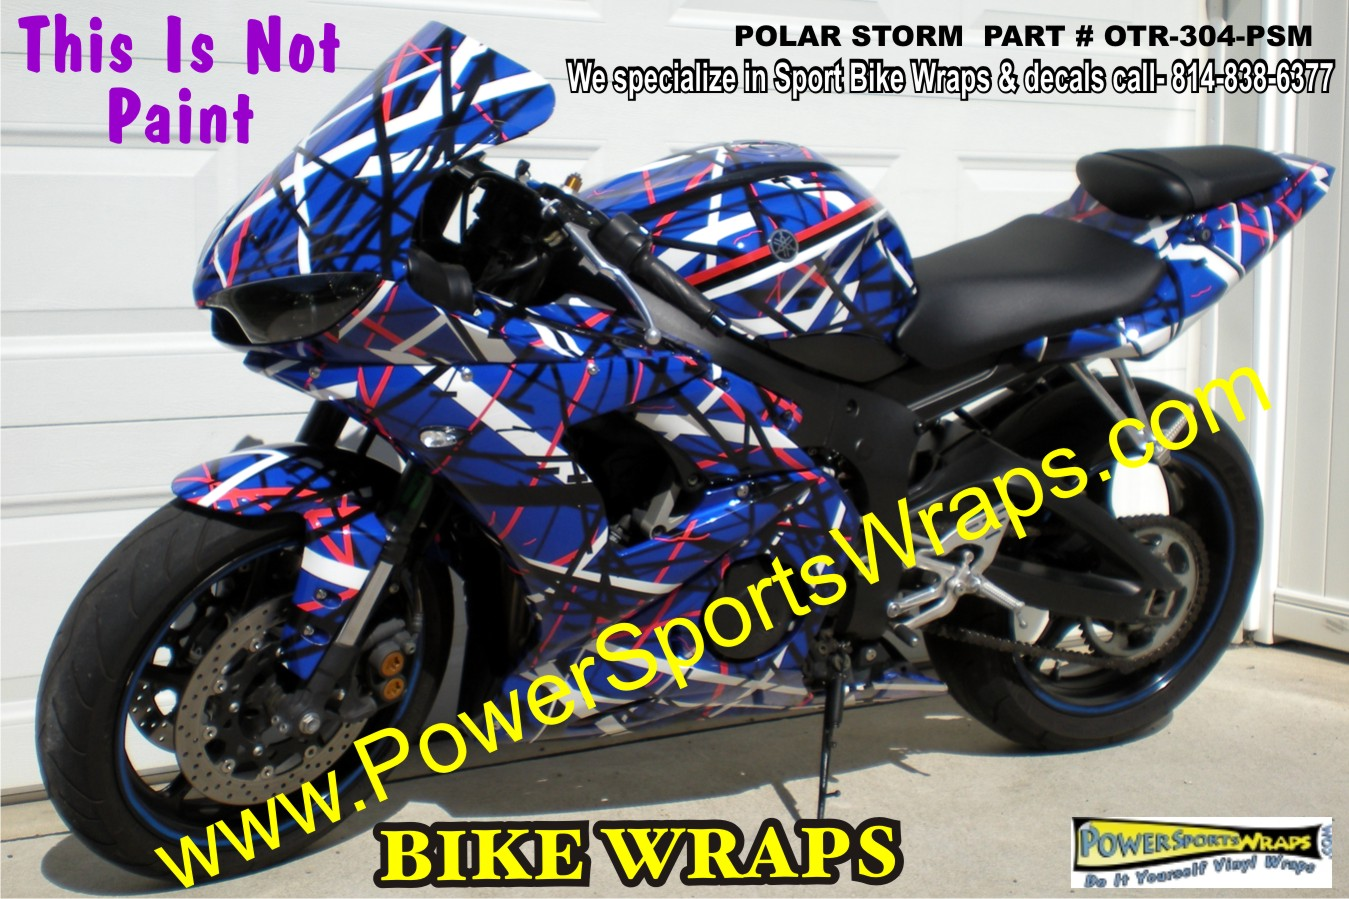 Polar Storm YAMAHA R BIKE WRAP MOTORCYCLE WRAPS BIKE WRAP - Custom vinyl decals motorcycles